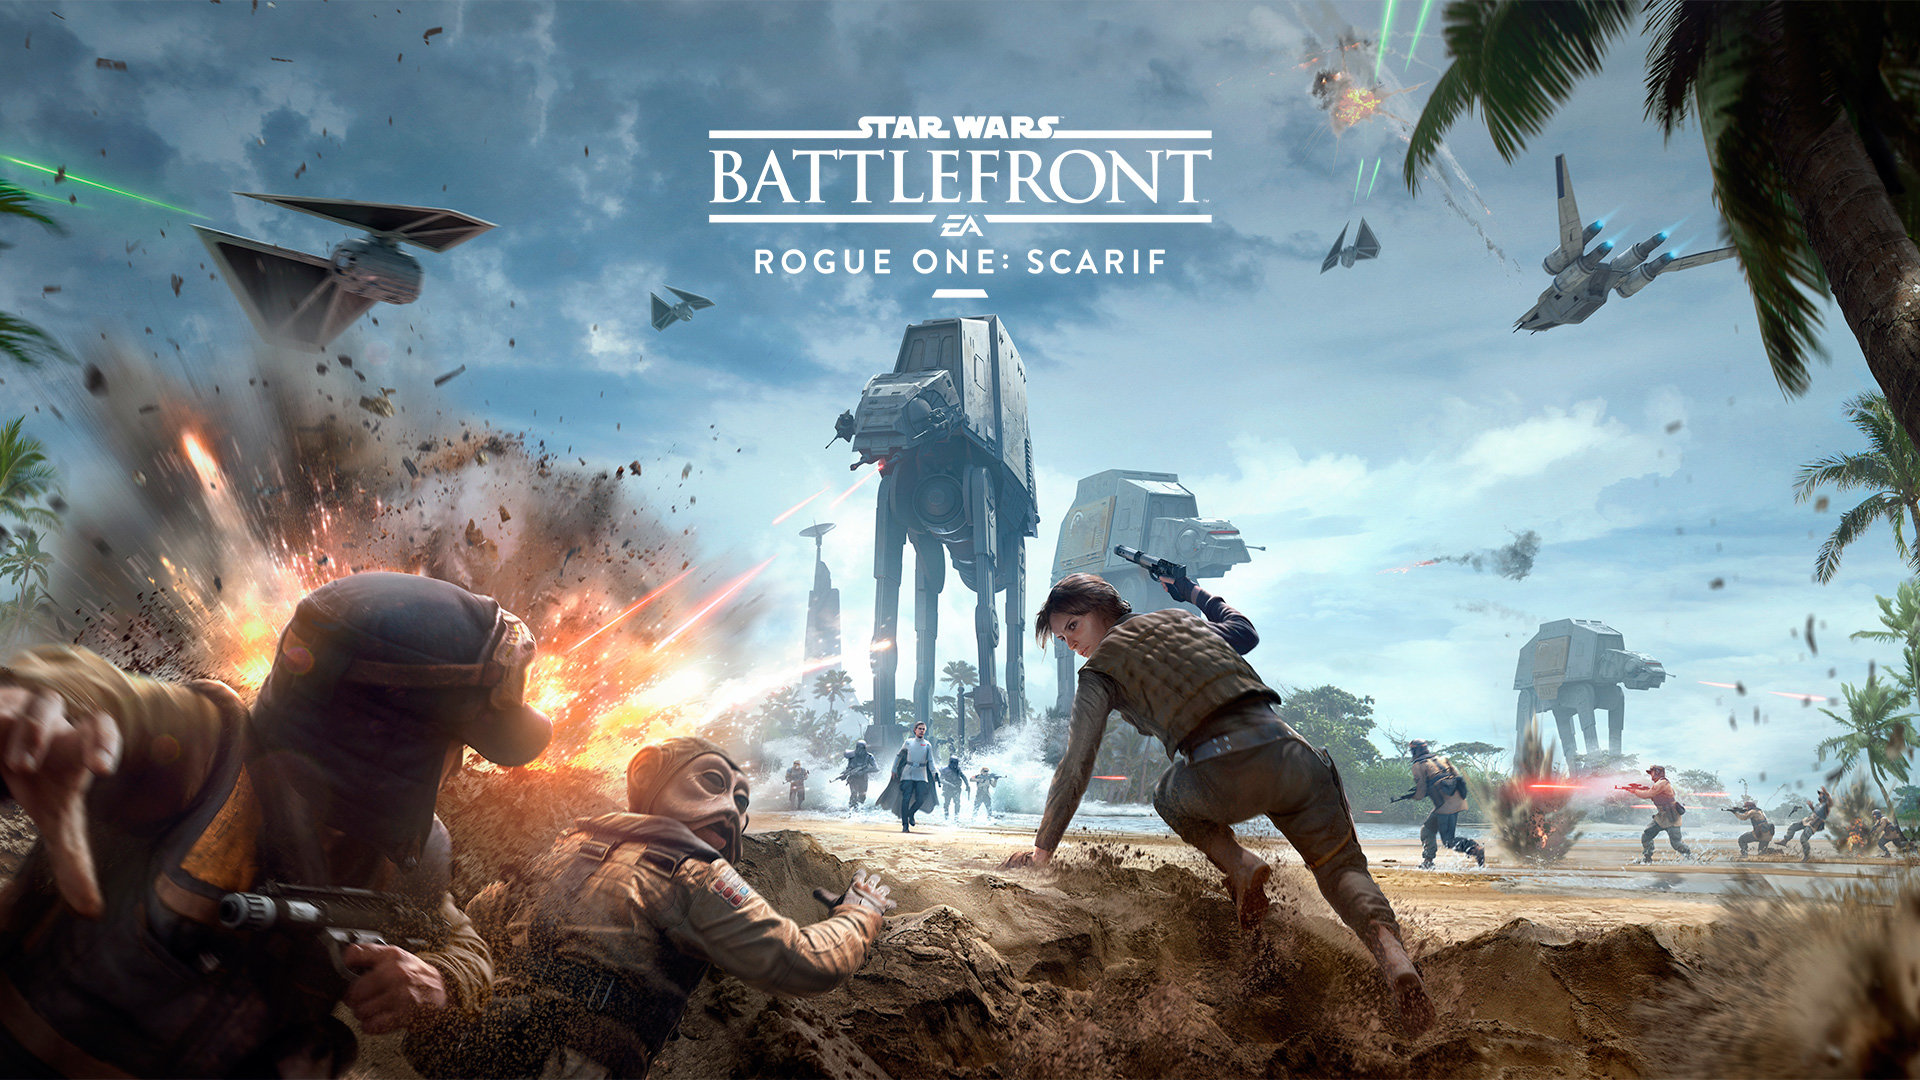 Star Wars Battlefront : Rogue One - Scarif